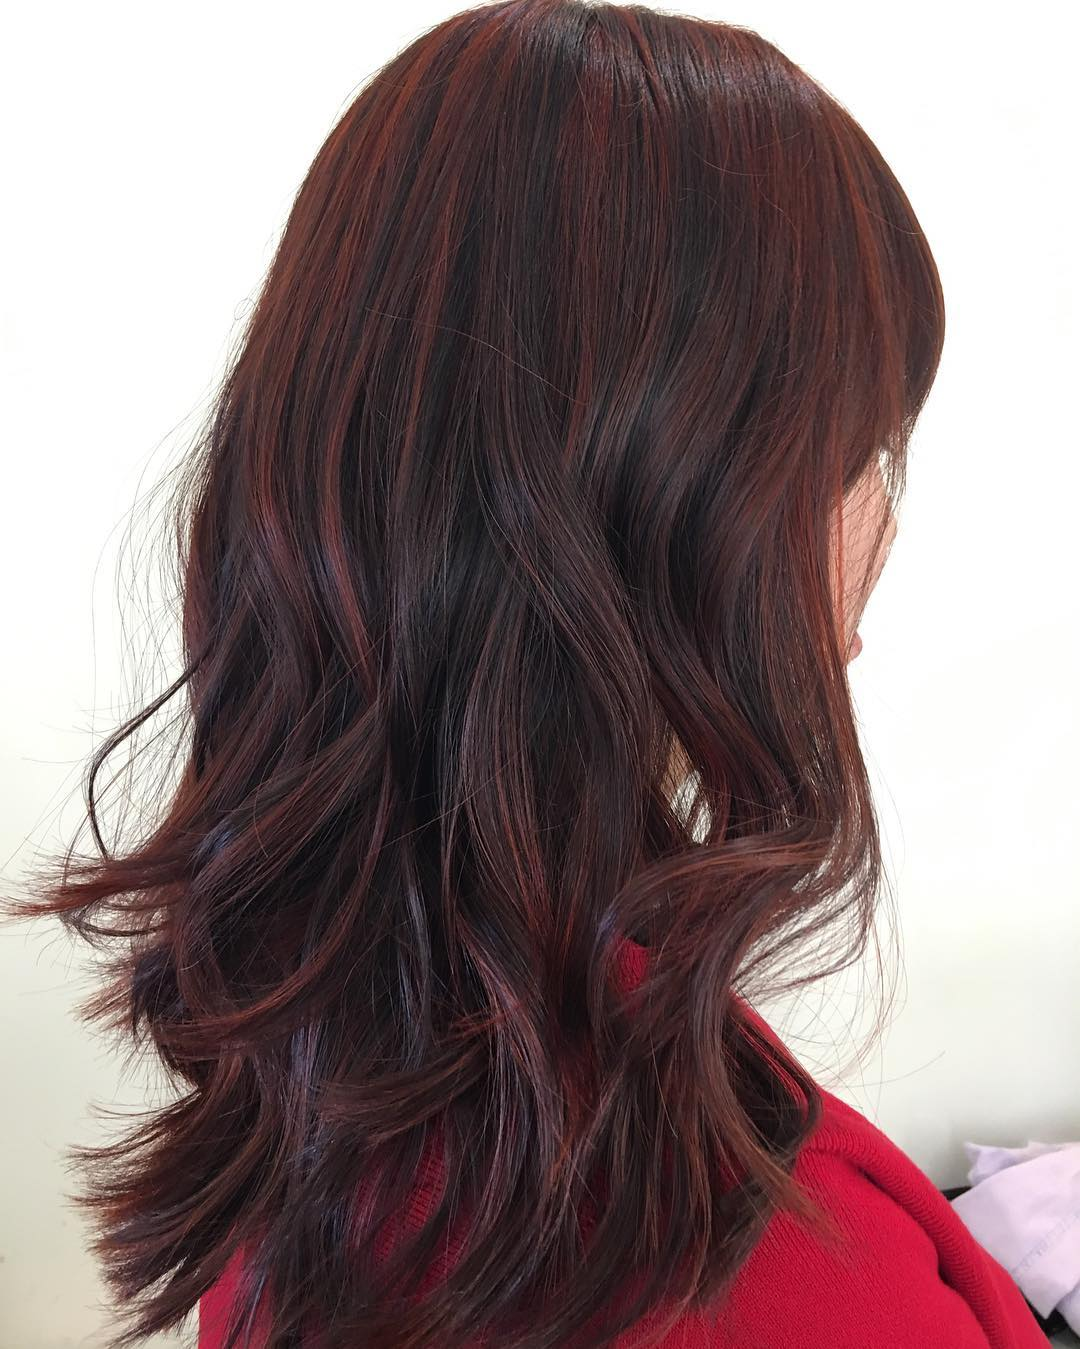 50 Shades of Burgundy Hair Color: Dark, Maroon, Burgundy ...